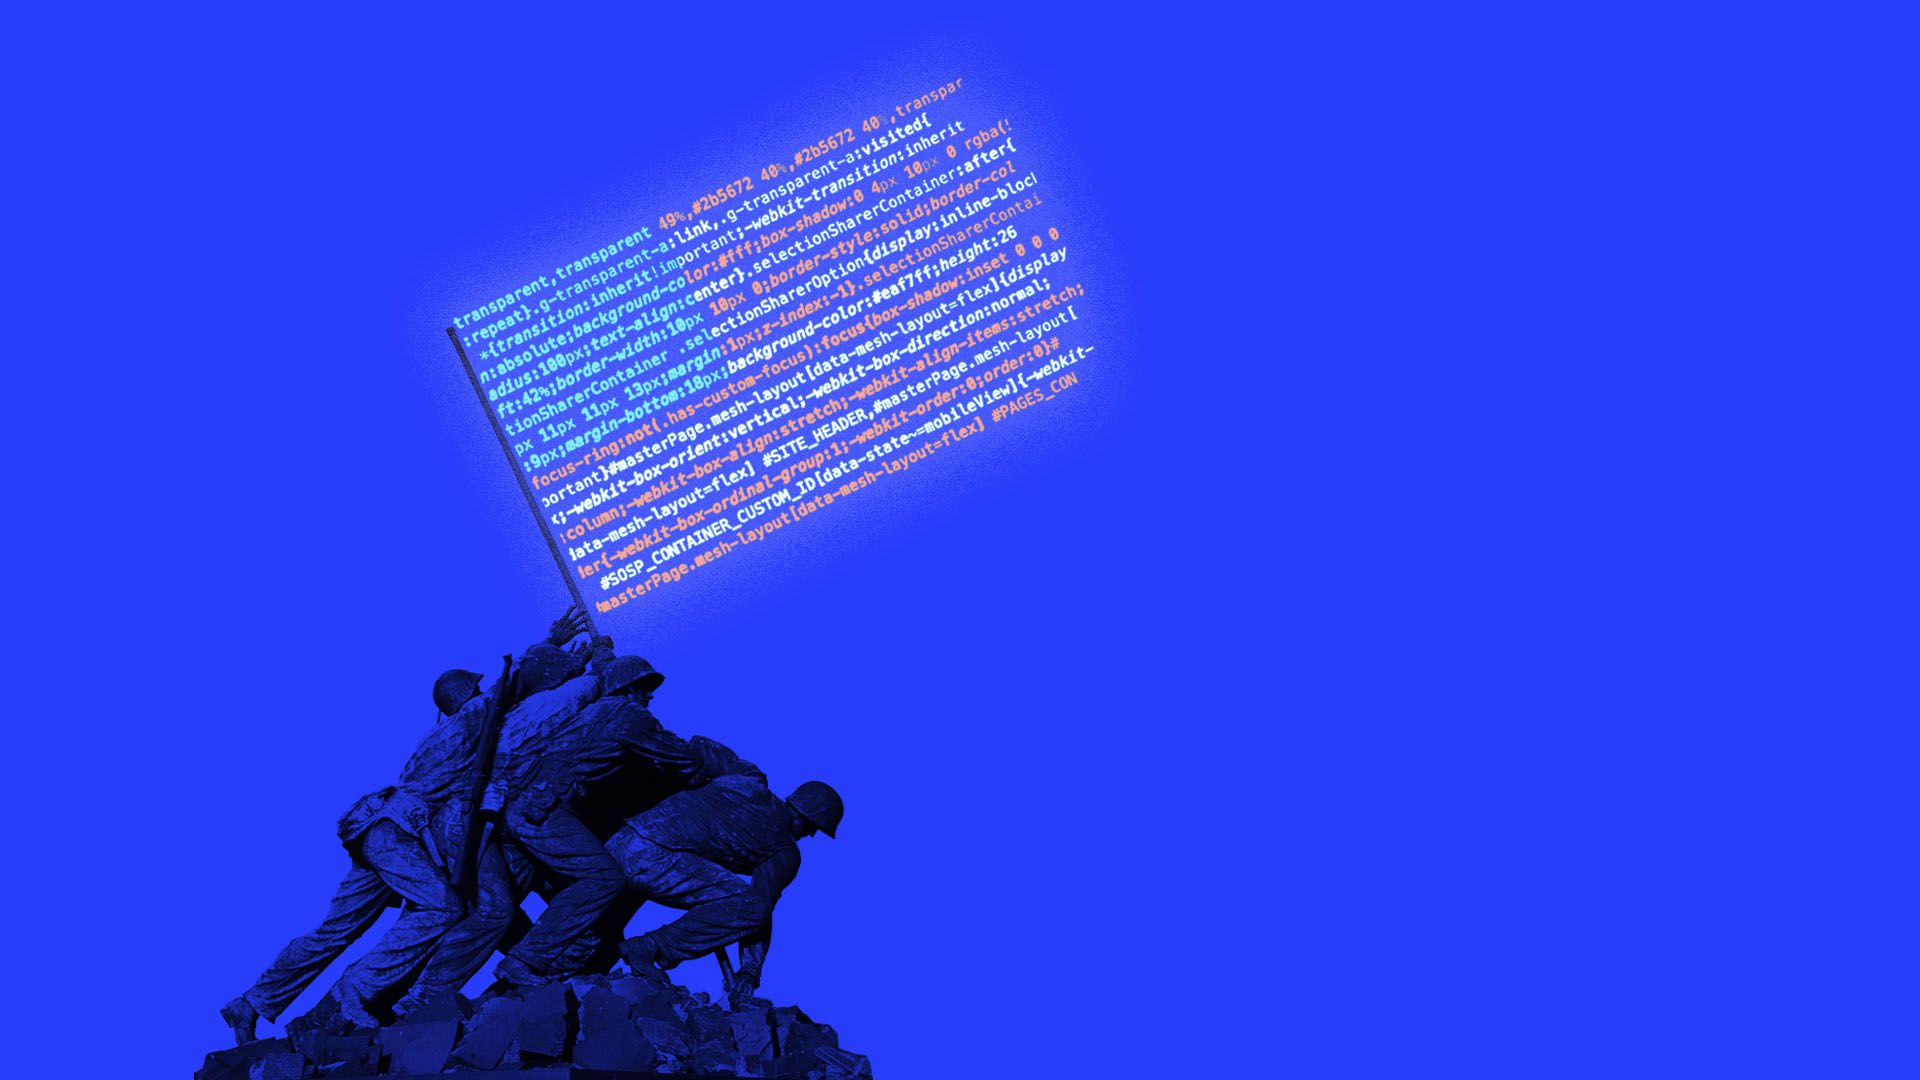 Illustration of Iwo Jima American flag raising with the flag in code